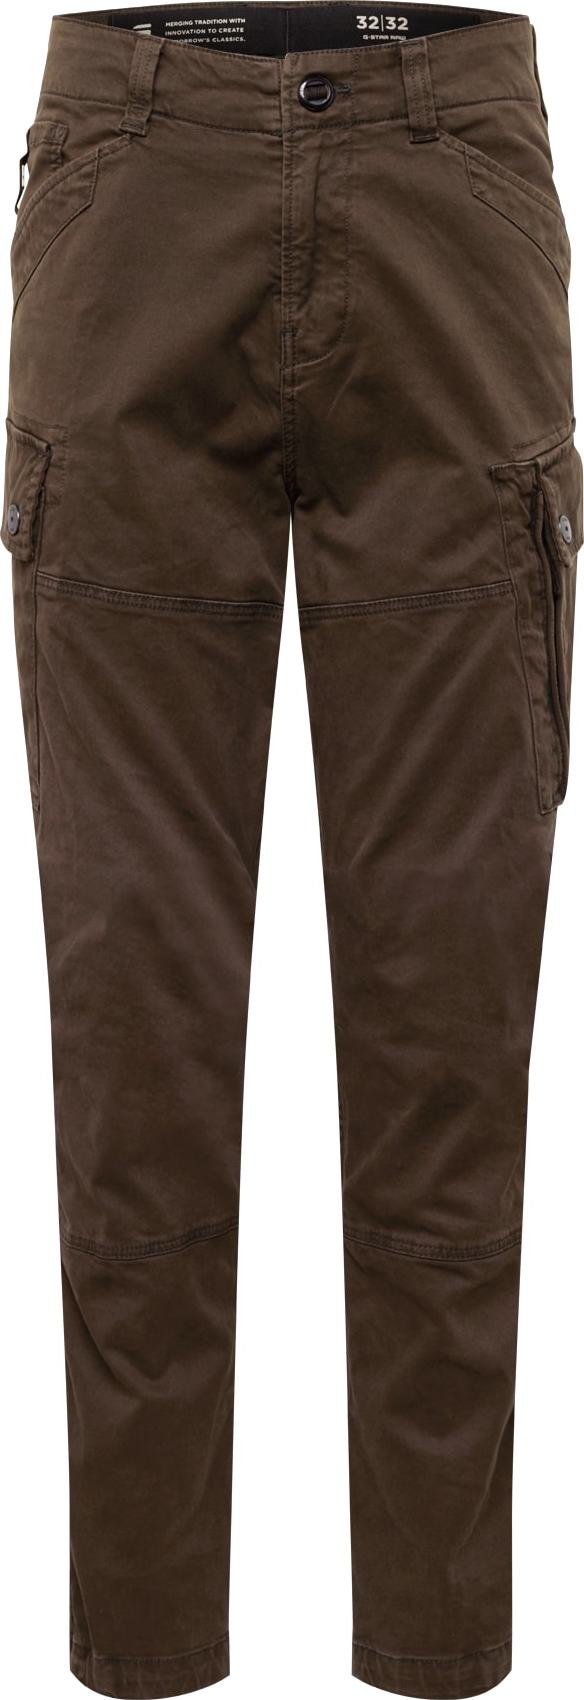 G-Star RAW Kapsáče Roxic straight tapered khaki G-Star Raw